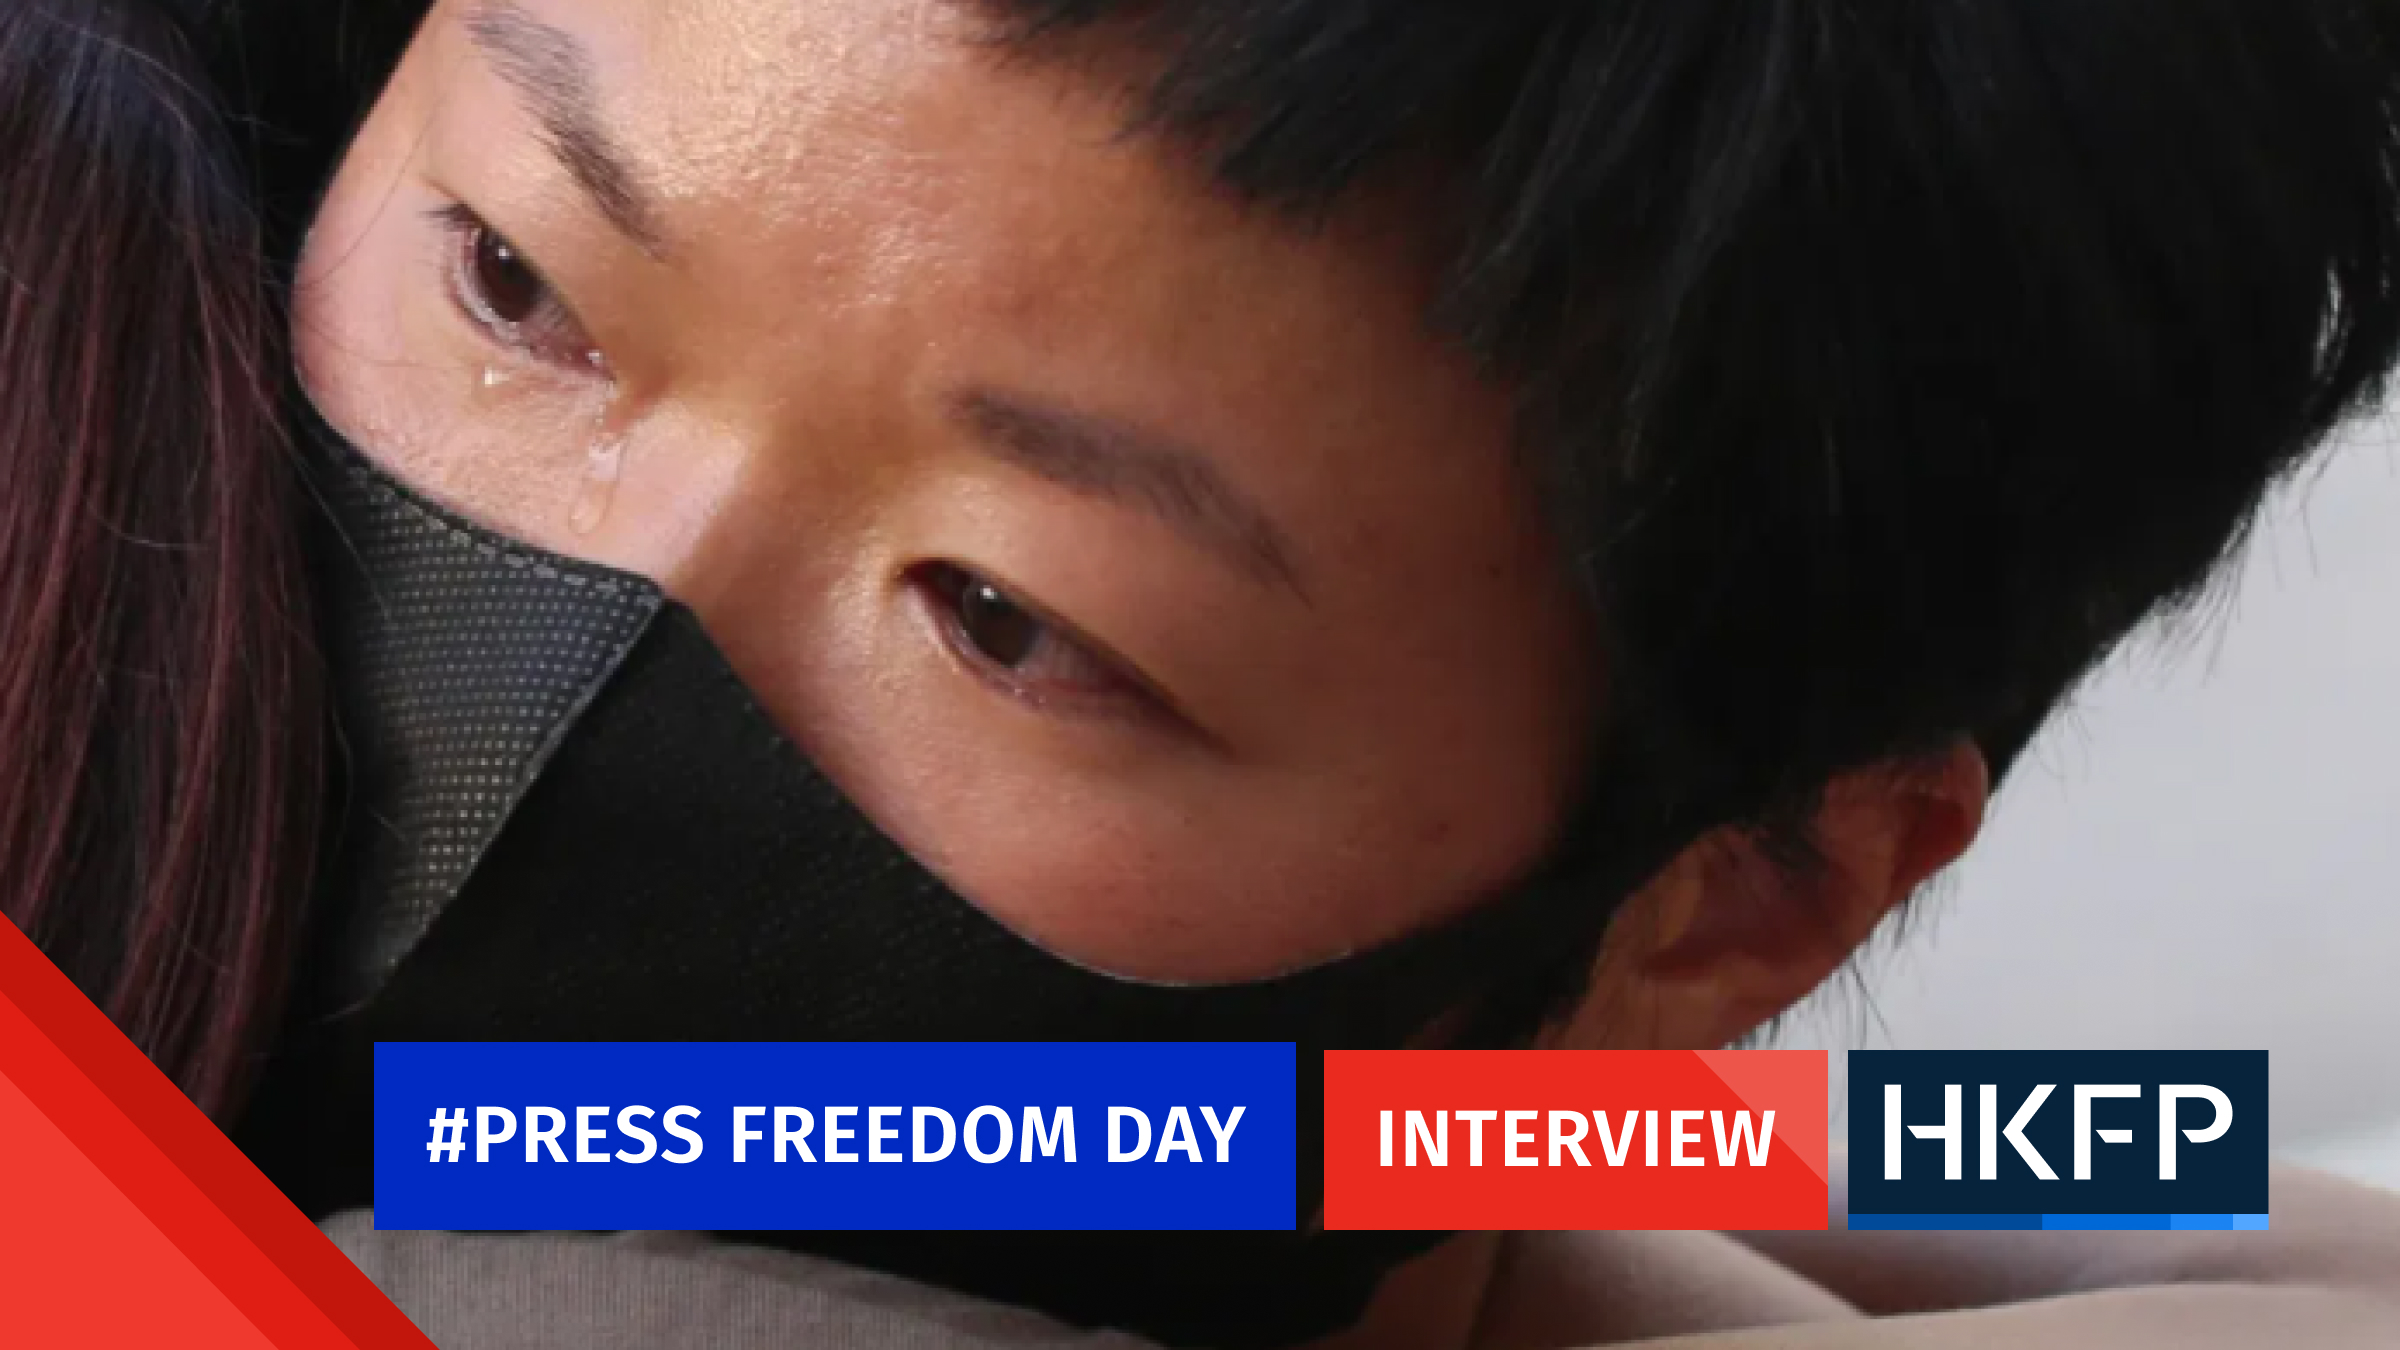 Interview: Hong Kong's 'fragile' freedoms had never taken root, says journalist Bao Choy following conviction over documentary